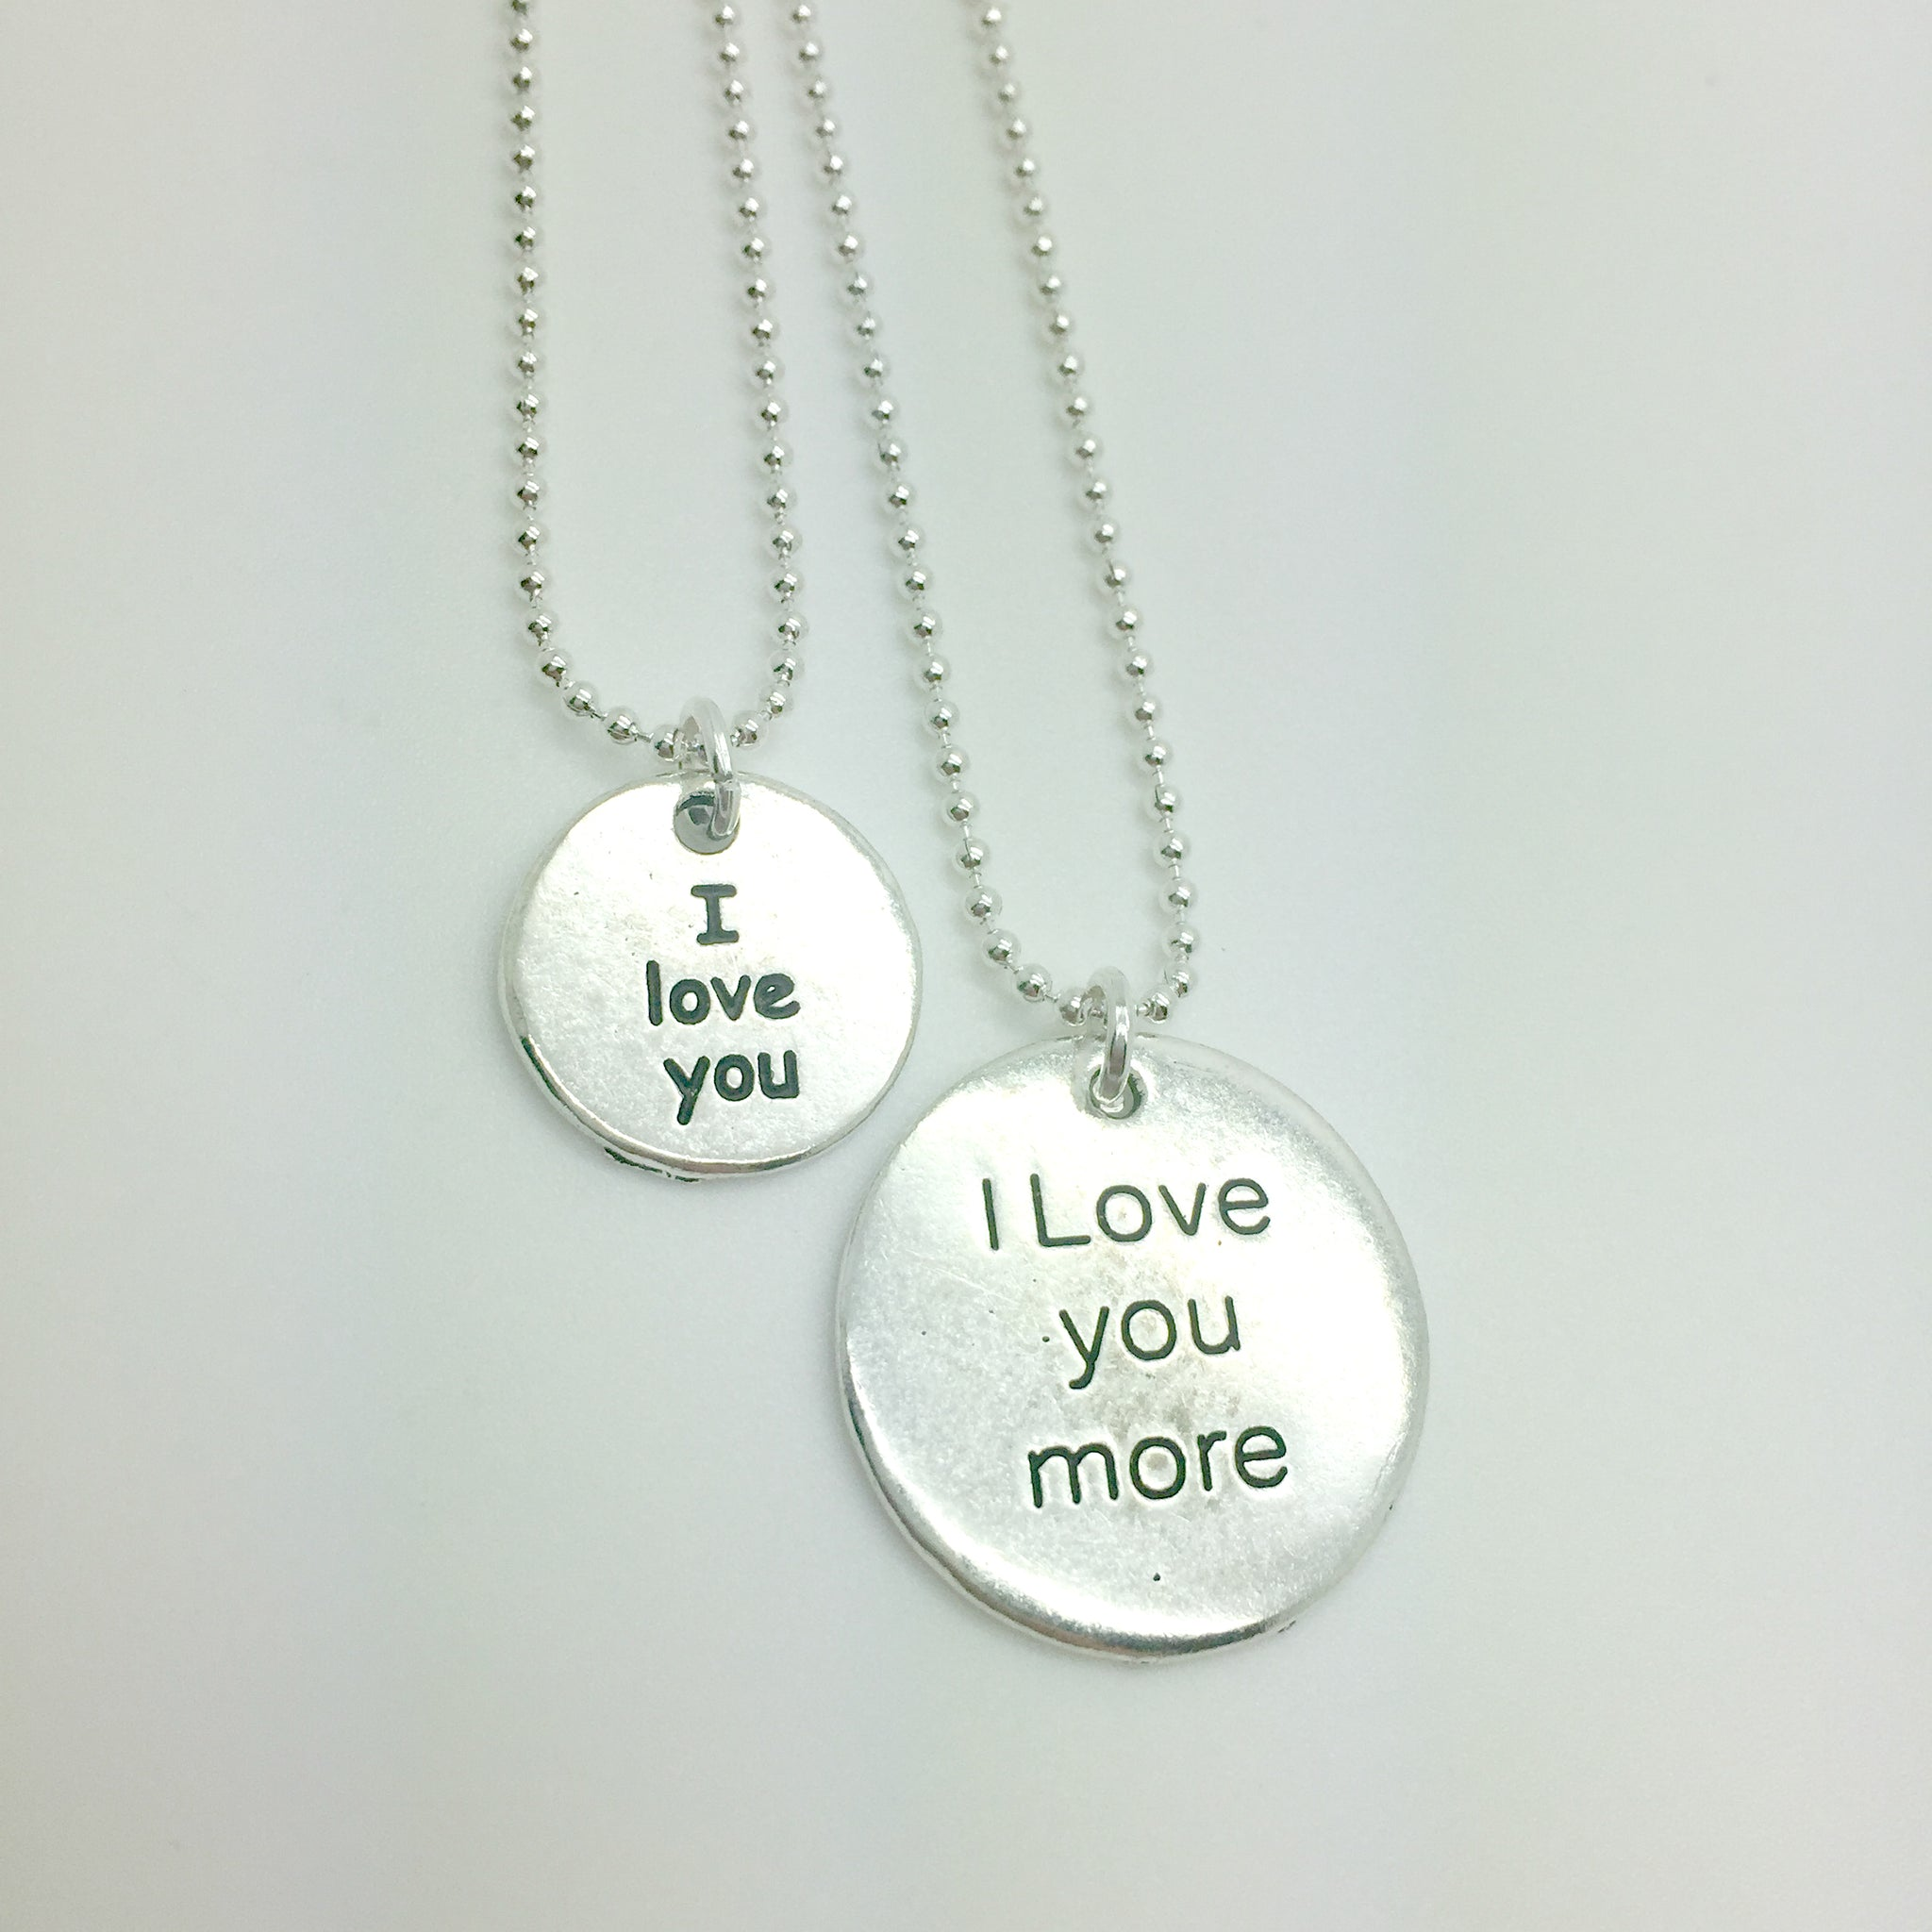 I love you, I love you more matching charm necklace set